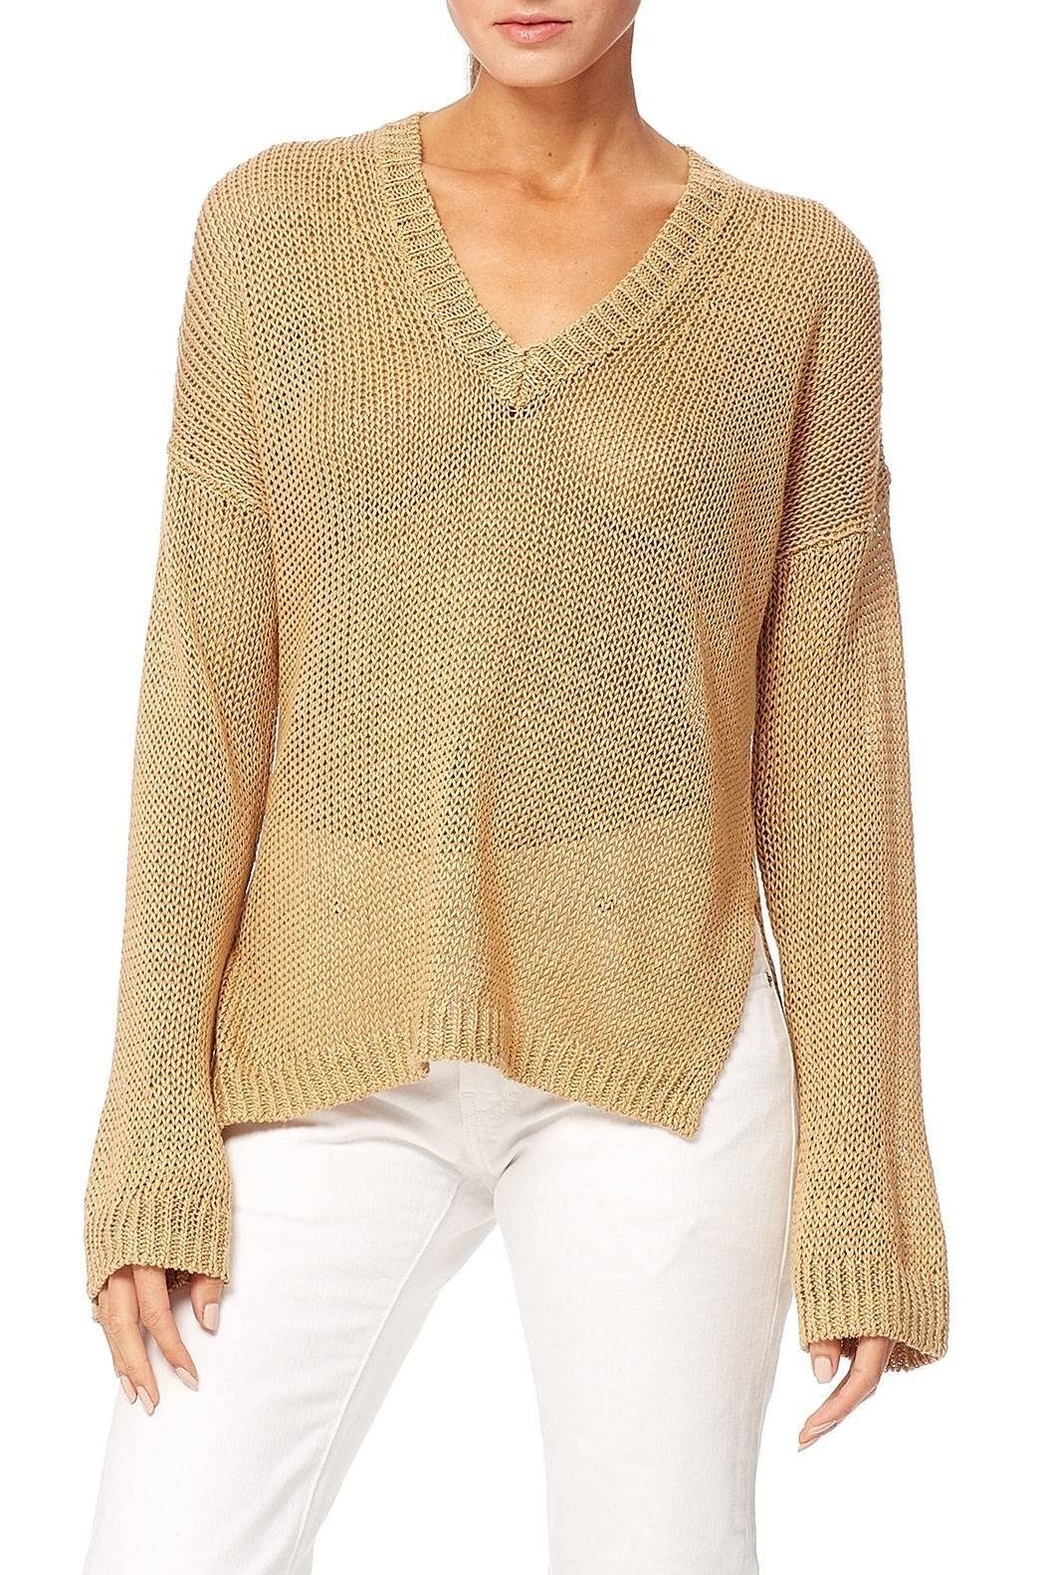 360 Cashmere Noelle Sweater - Main Image